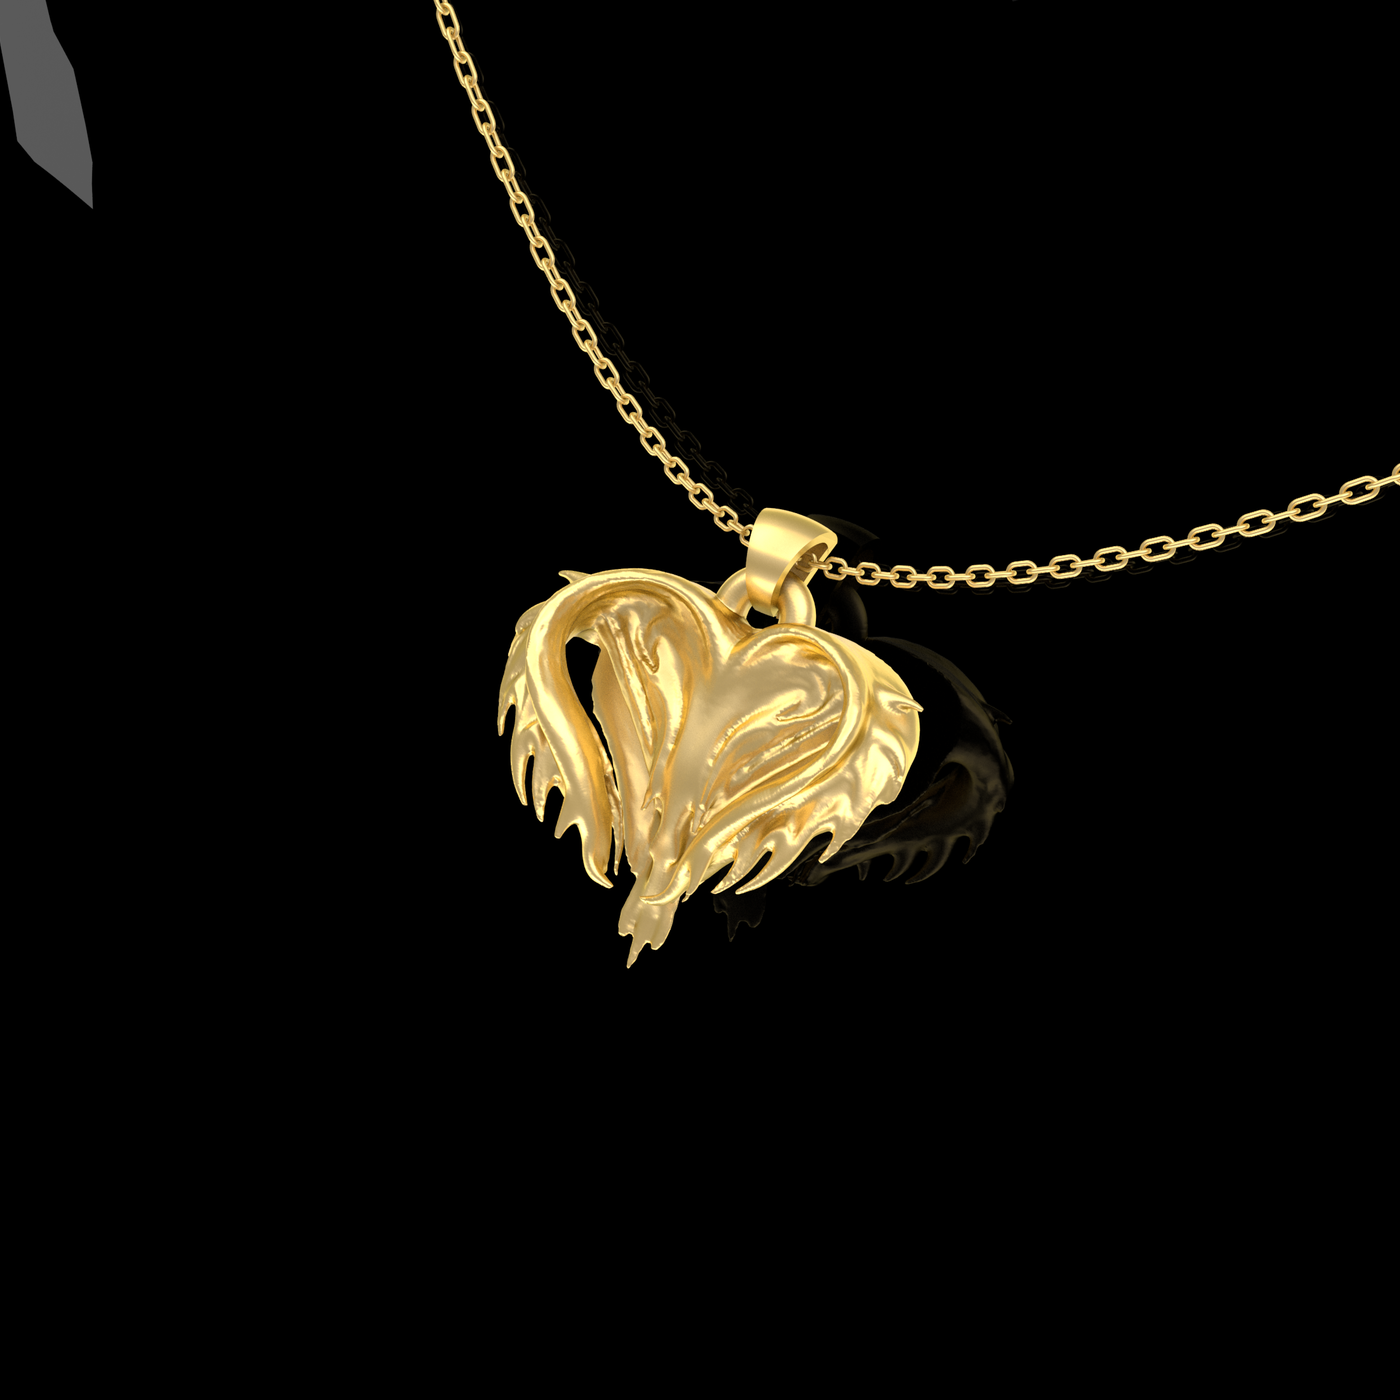 Chaotic Heart Pendant jewelry Gold 3D print model